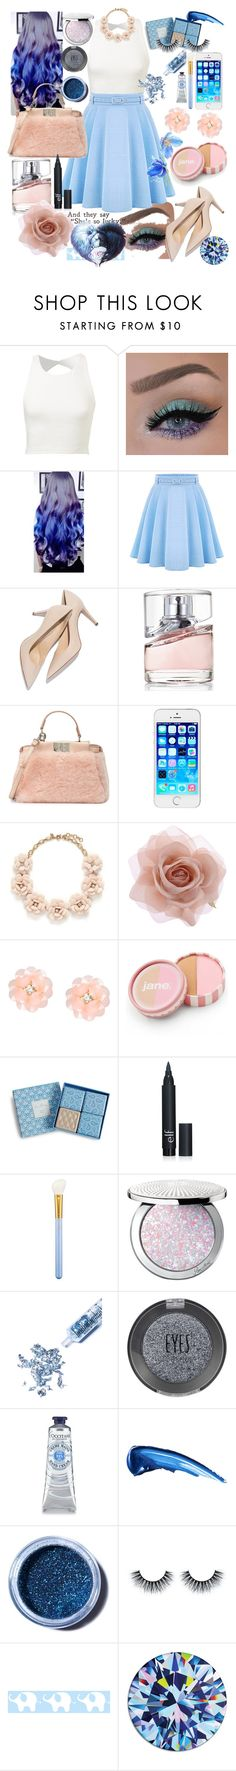 """Untitled #116"" by kukamilana ❤ liked on Polyvore featuring WithChic, HUGO, Fendi, J.Crew, Accessorize, Dettagli, jane, Vera Bradley, MAC Cosmetics and Guerlain"